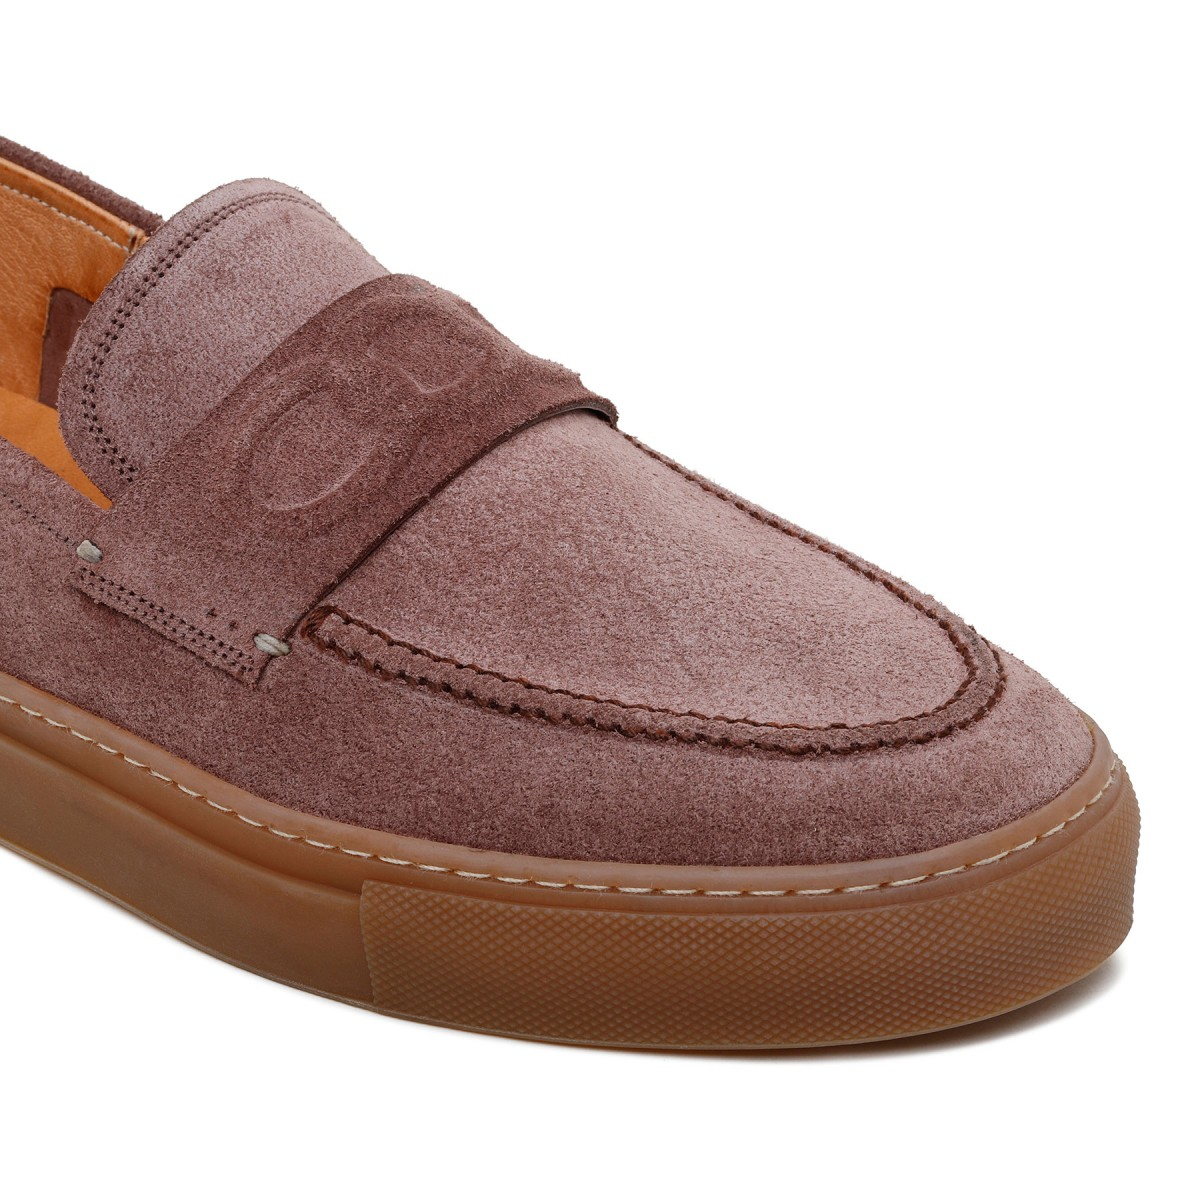 St. Tropez brown suede loafers